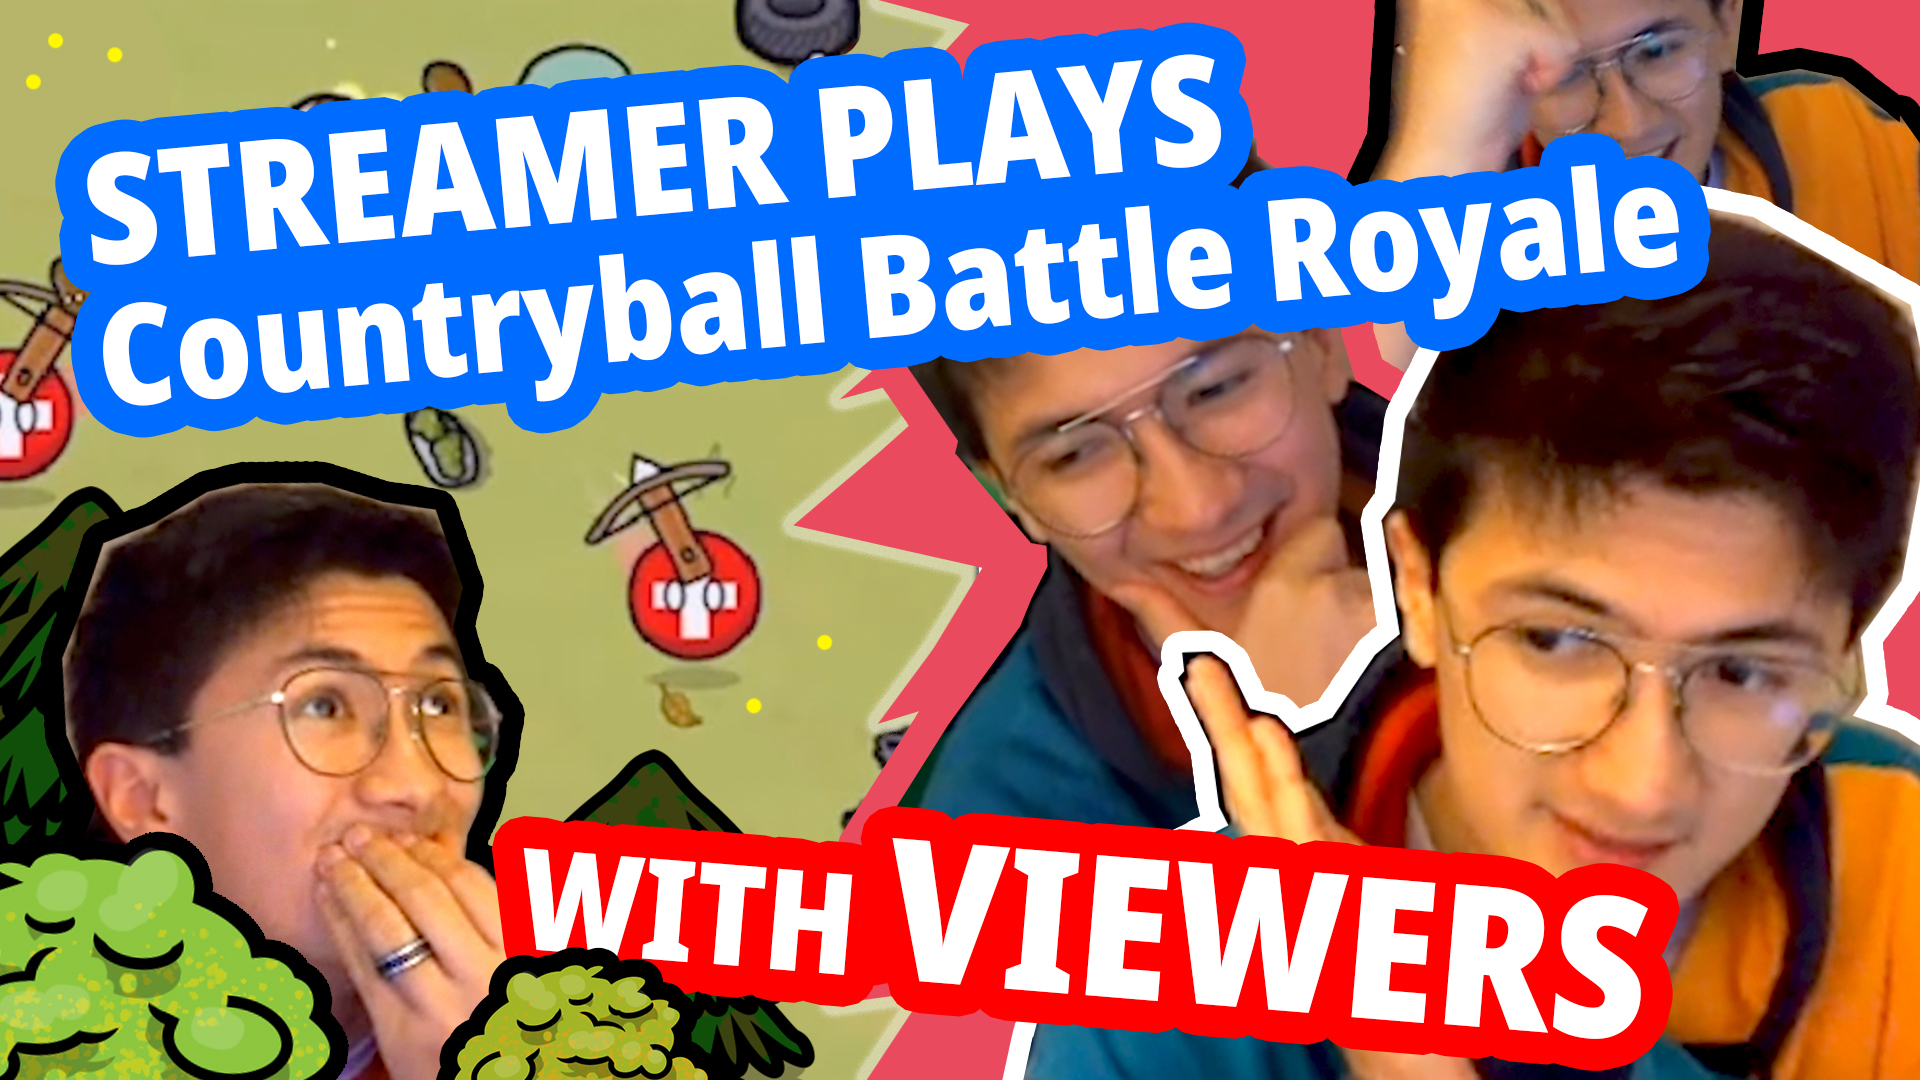 Funny Twitch Streamer plays Countryball (Battle Royale) mobile game with viewers [2021]